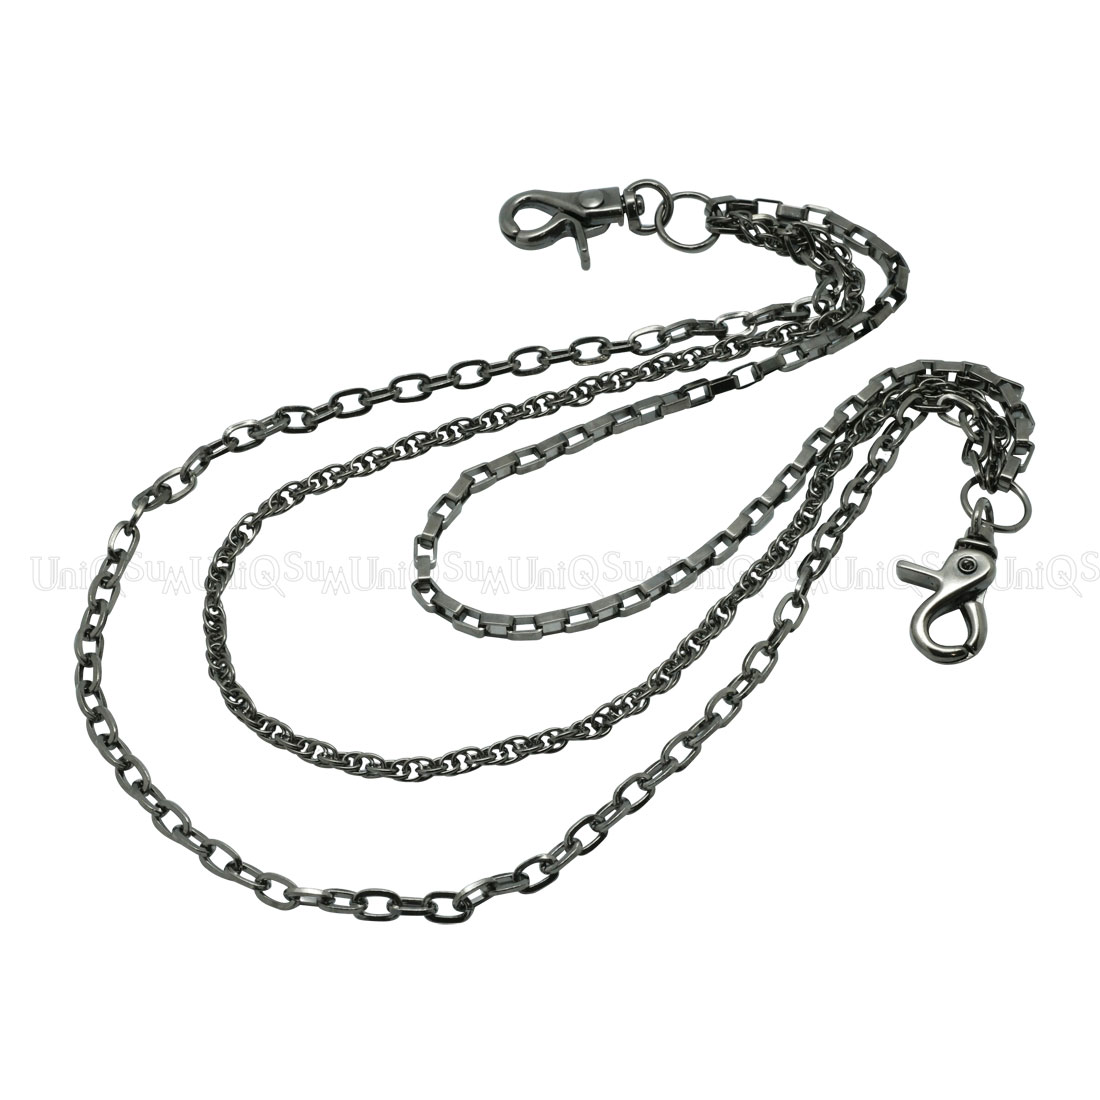 1100x1100 Simple Slim Triple Wallet Chain Lightweight Biker Chain Gun Metal